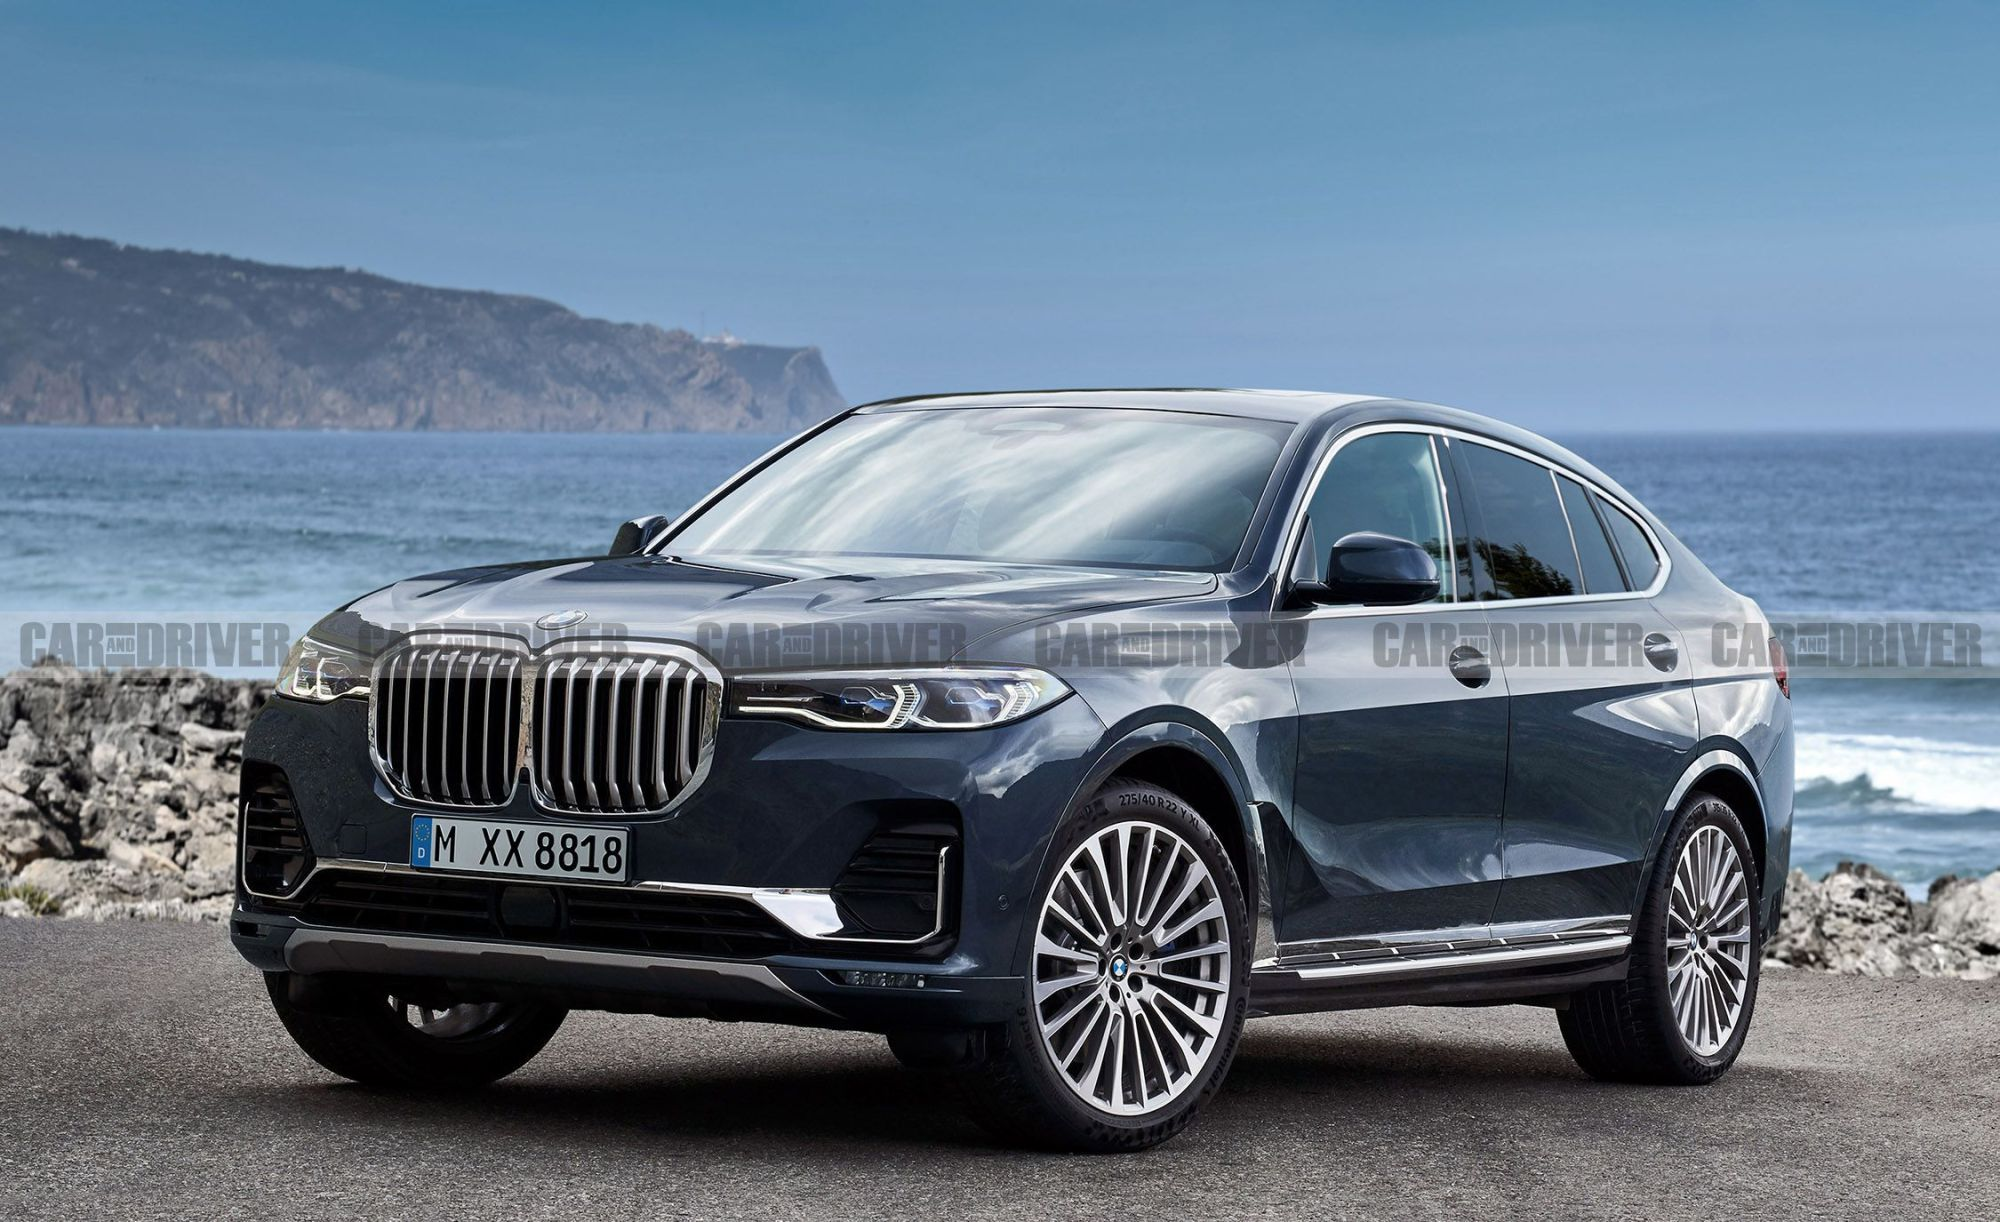 hight resolution of here s what a bmw x8 would look like